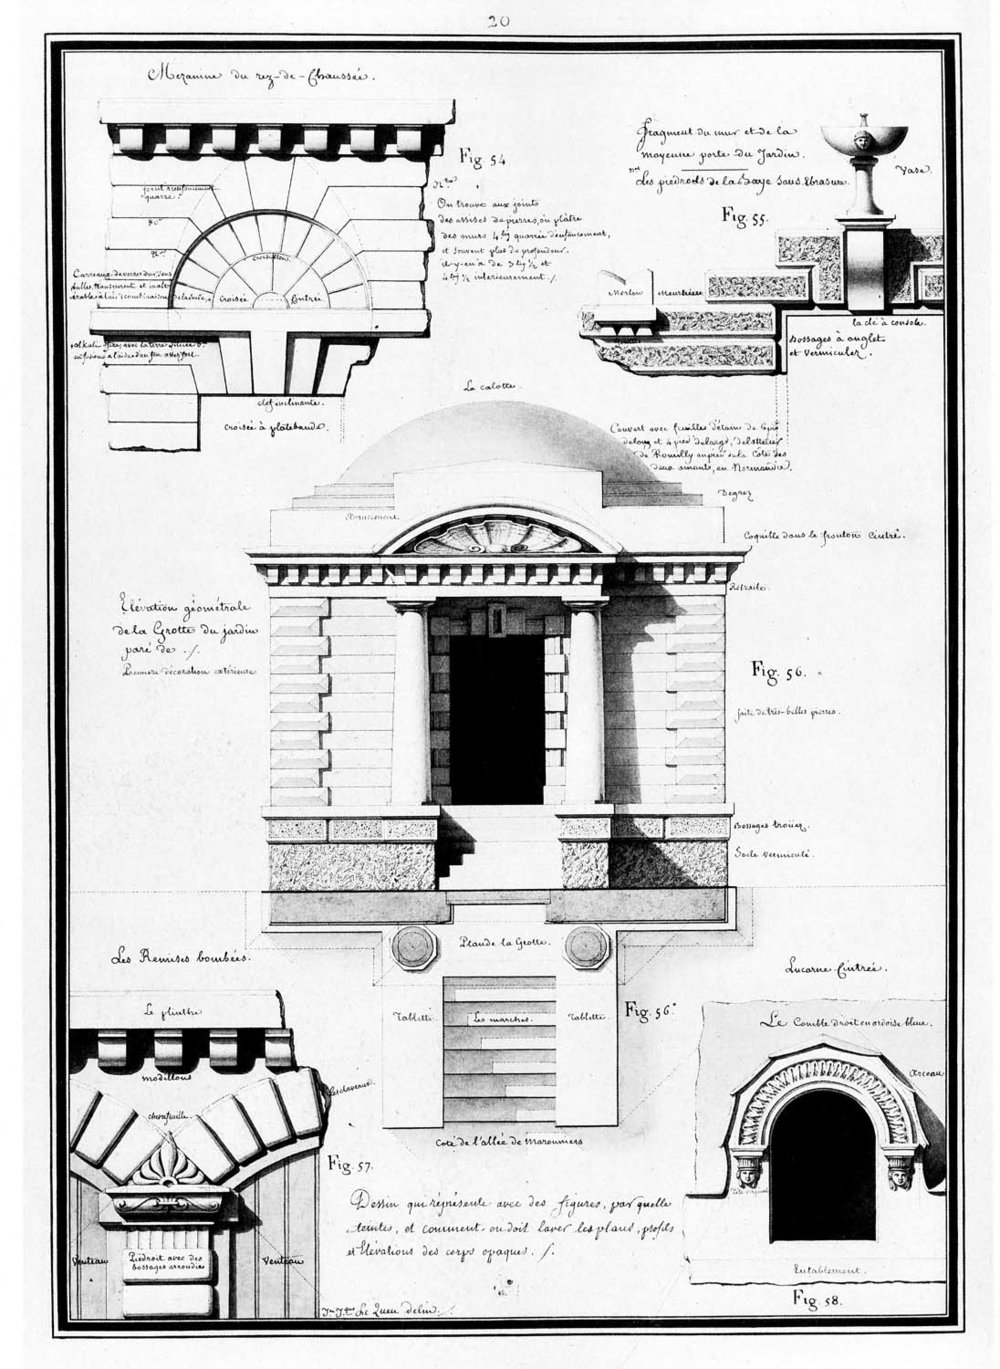 Ground floor mezzanine, dormer, grotto, Convex Mews (plan)…